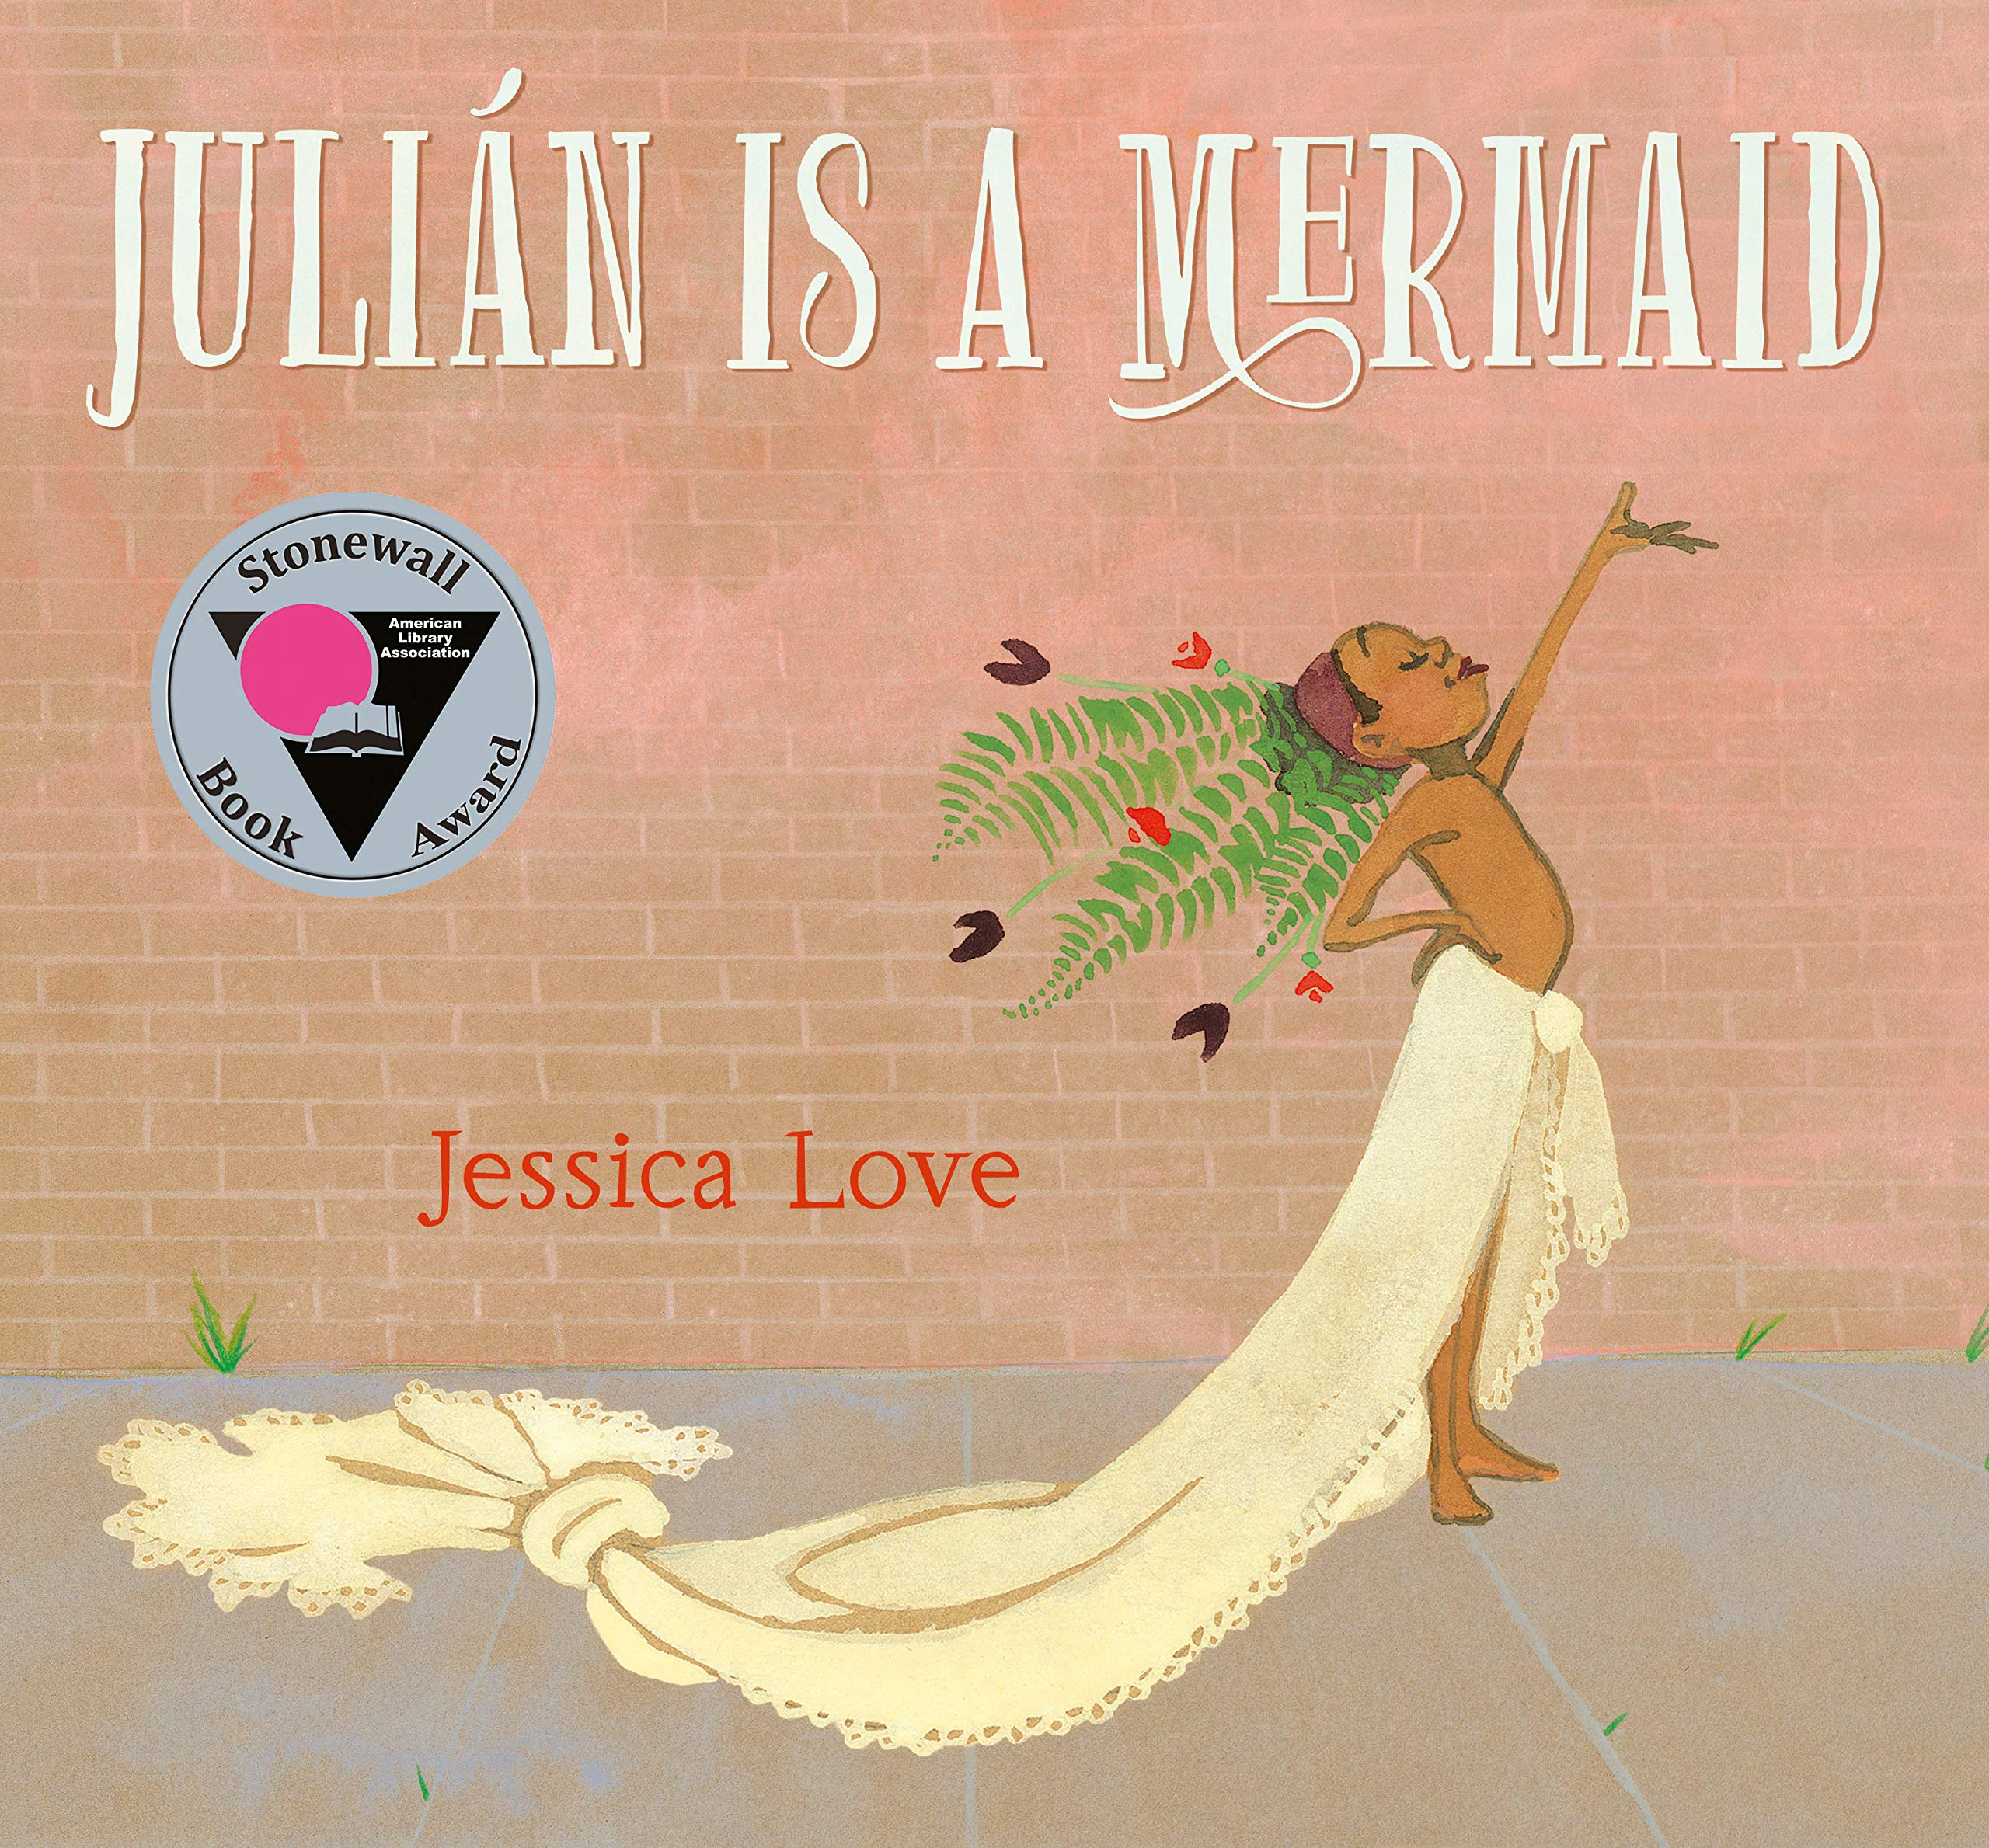 Julián is a Mermaid by Jessica Love LGBTQ